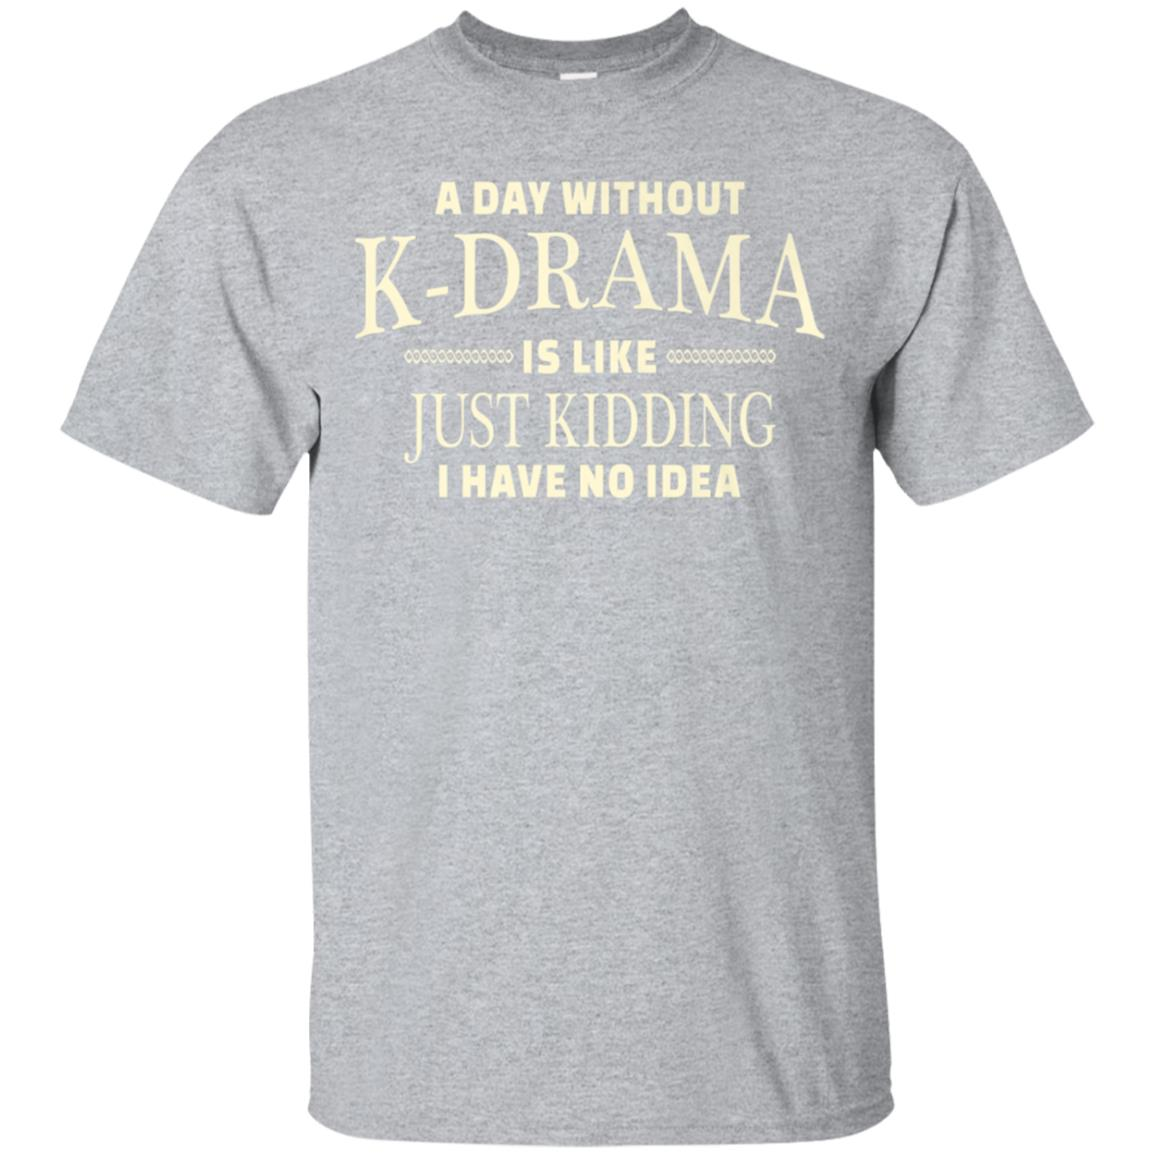 A Day Without Korean Drama T-shirt Funny Korean TV T-shirt 99promocode